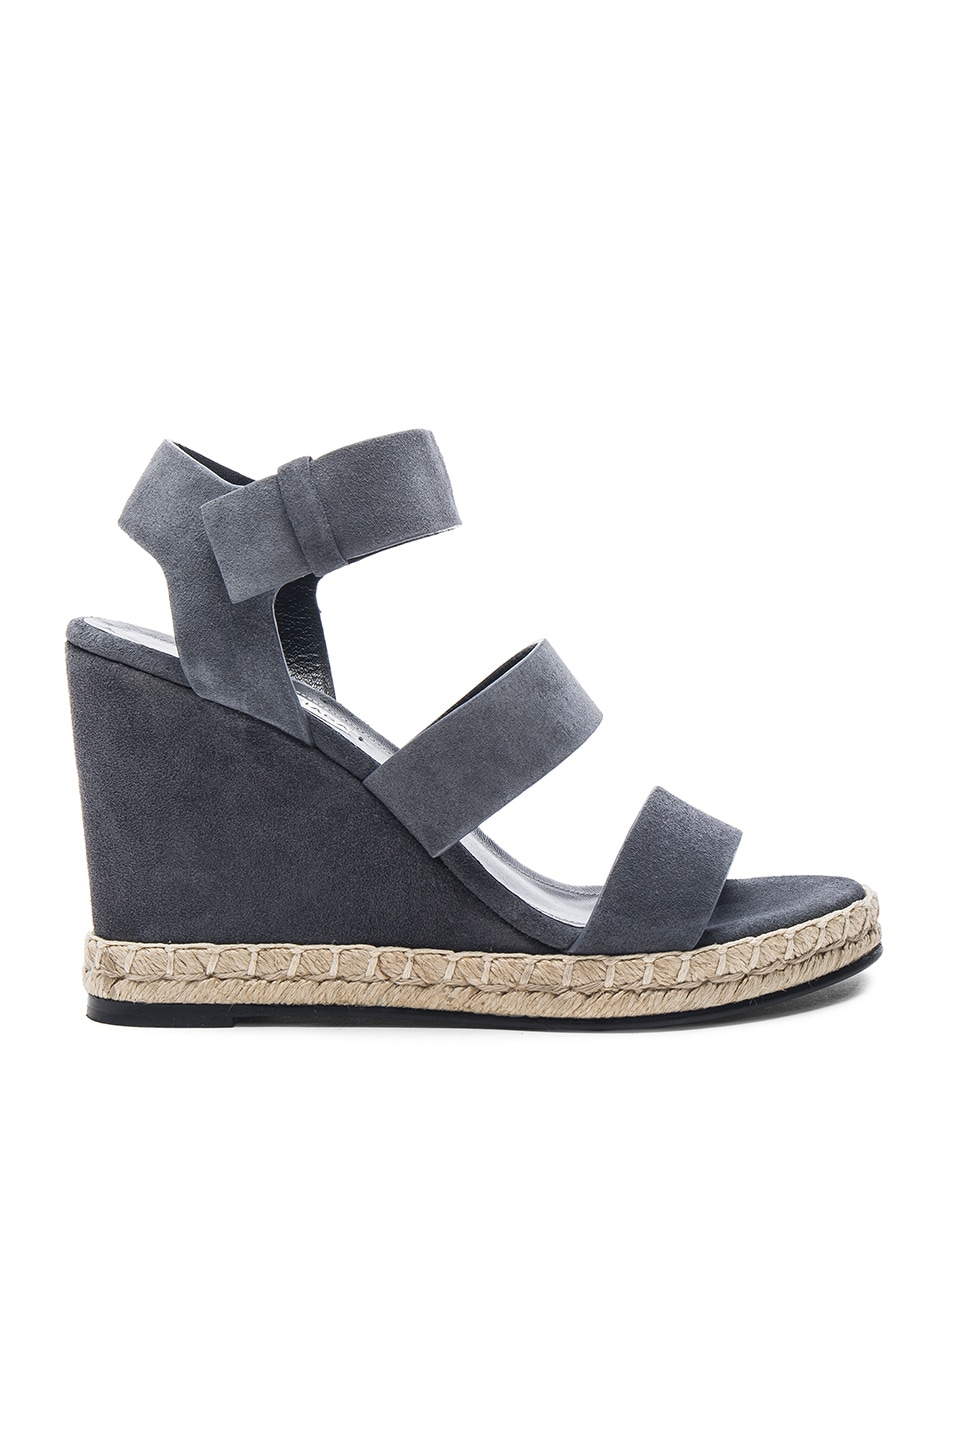 Image 1 of Balenciaga Suede Wedge Sandals in Grey